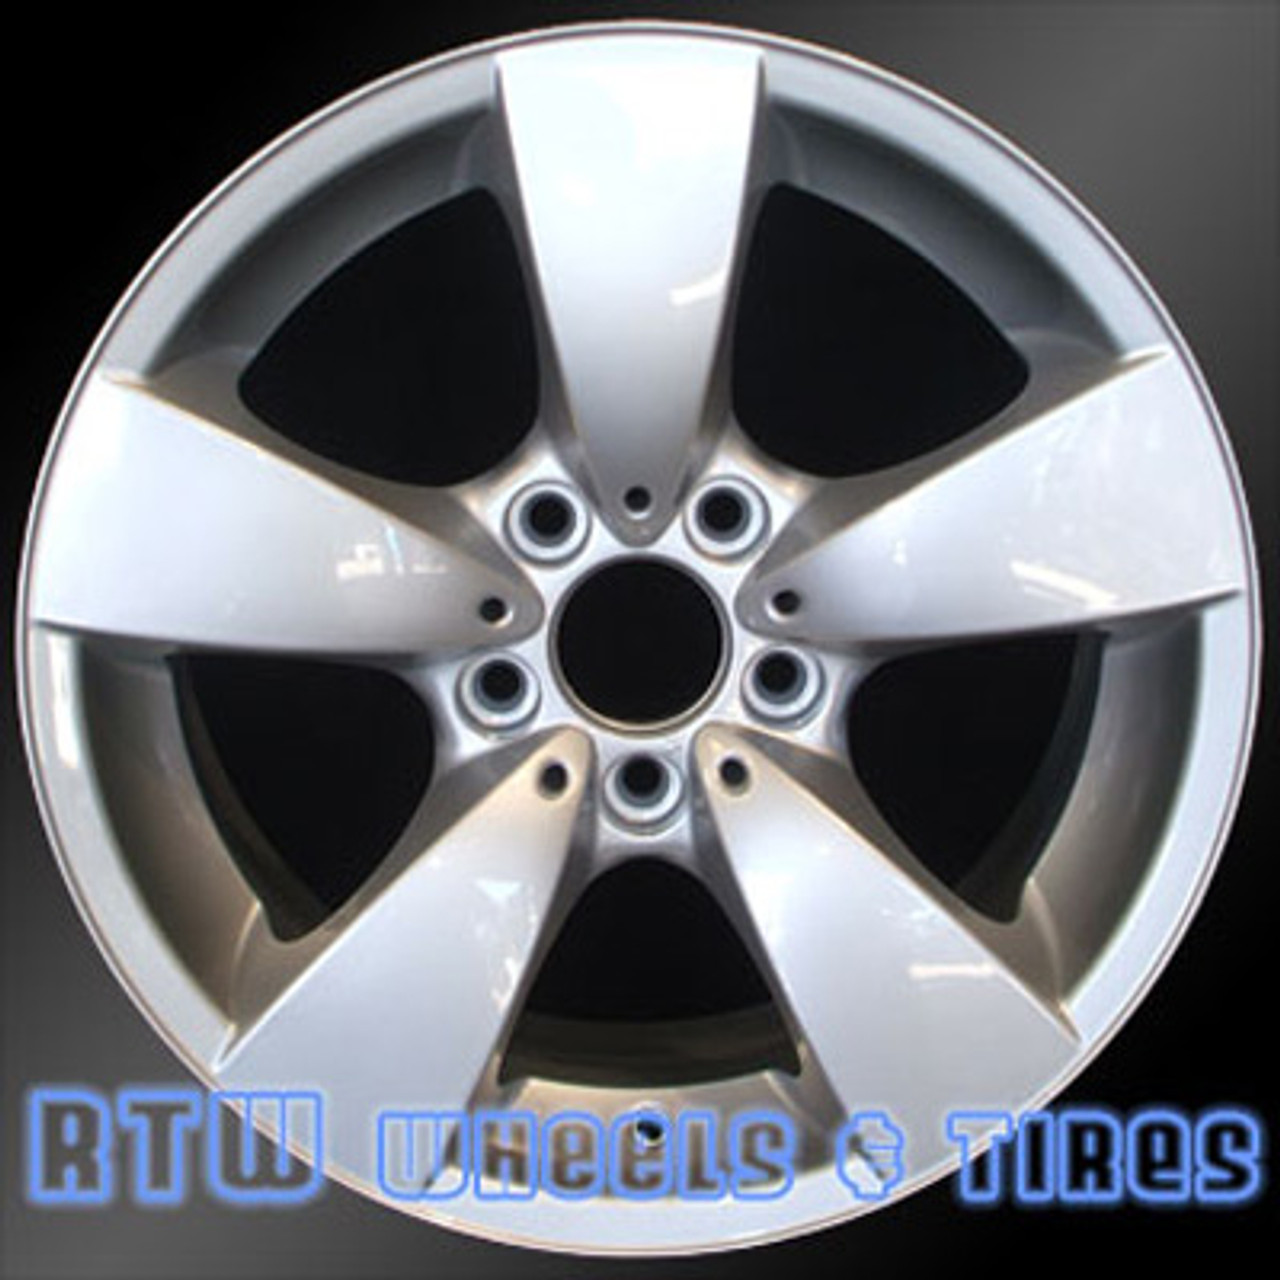 BMW 5 Series Wheels For Sale 2004-2010 Silver 59471